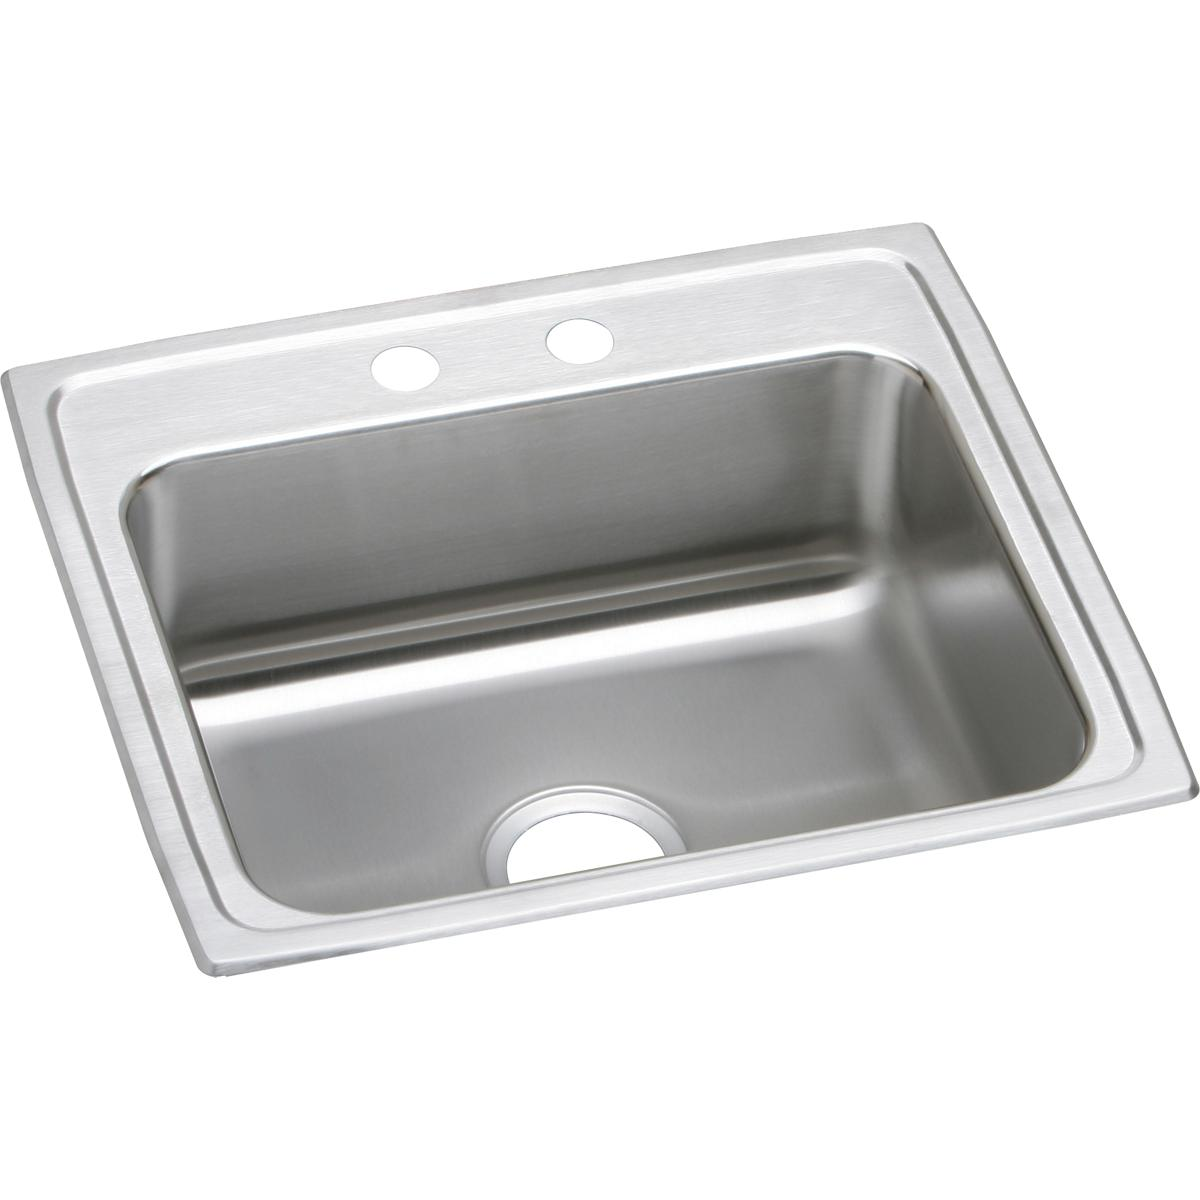 "Elkay Lustertone Classic Stainless Steel 22"" x 19-1/2"" x 5"", Single Bowl Drop-in ADA Sink"